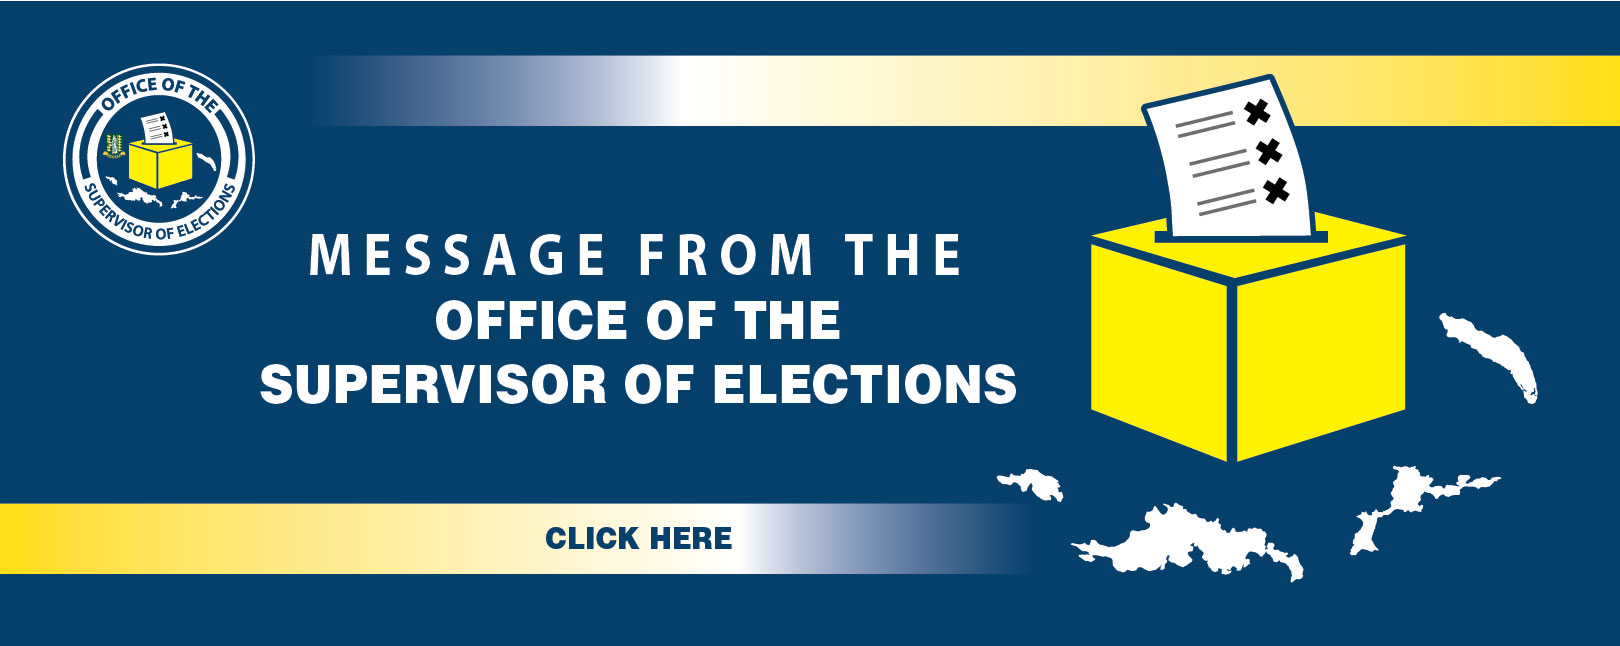 Home | Government of the Virgin Islands